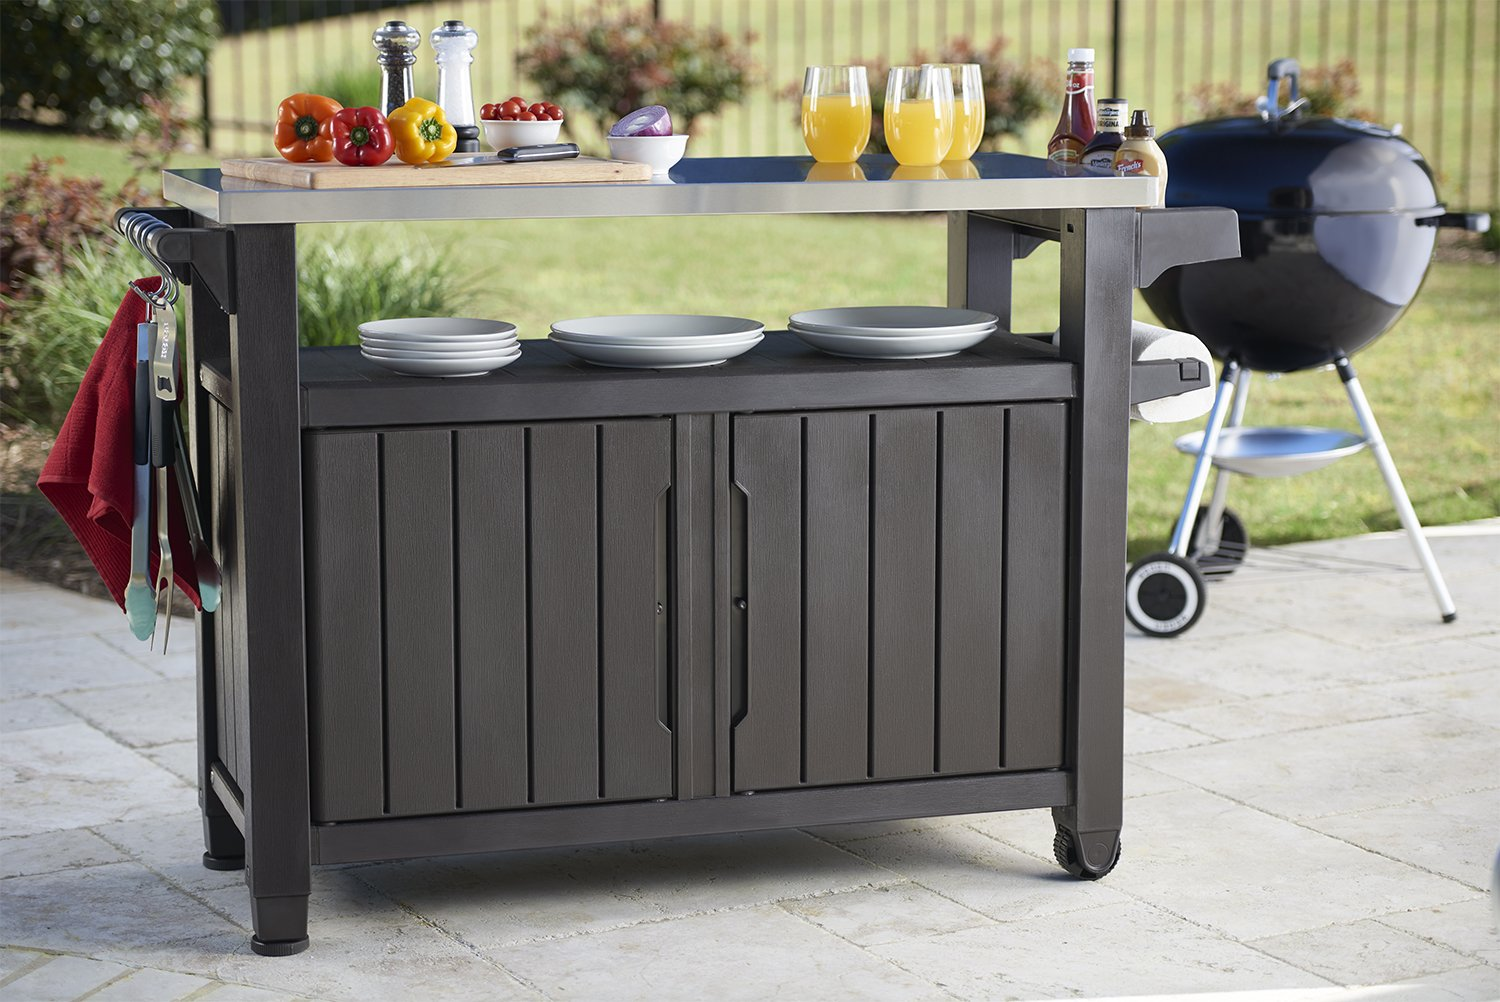 Barbecue Storage Table